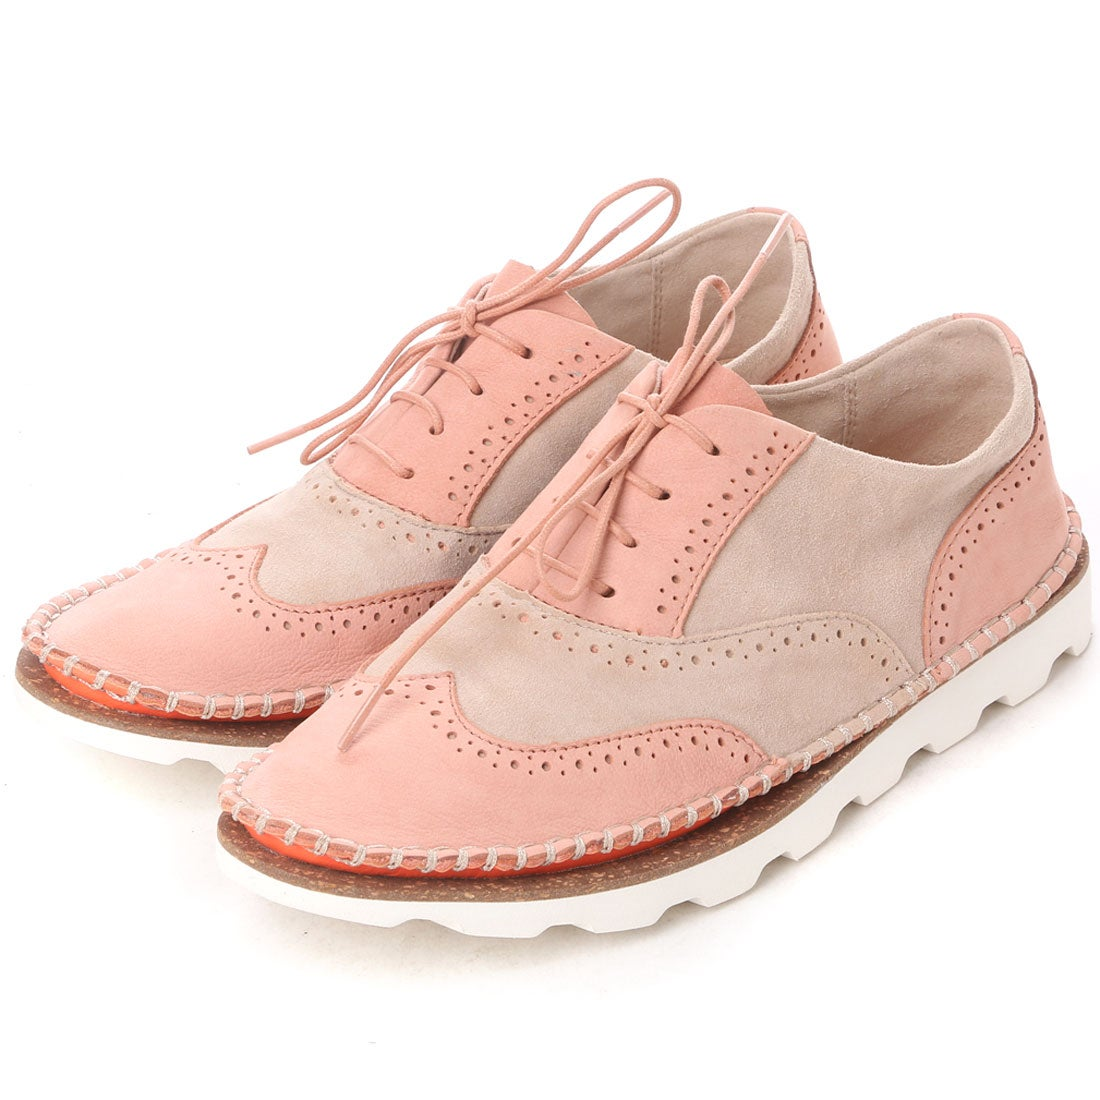 【SALE 52%OFF】クラークス Clarks Damara Rose Peach Combi (ピンク) レディース